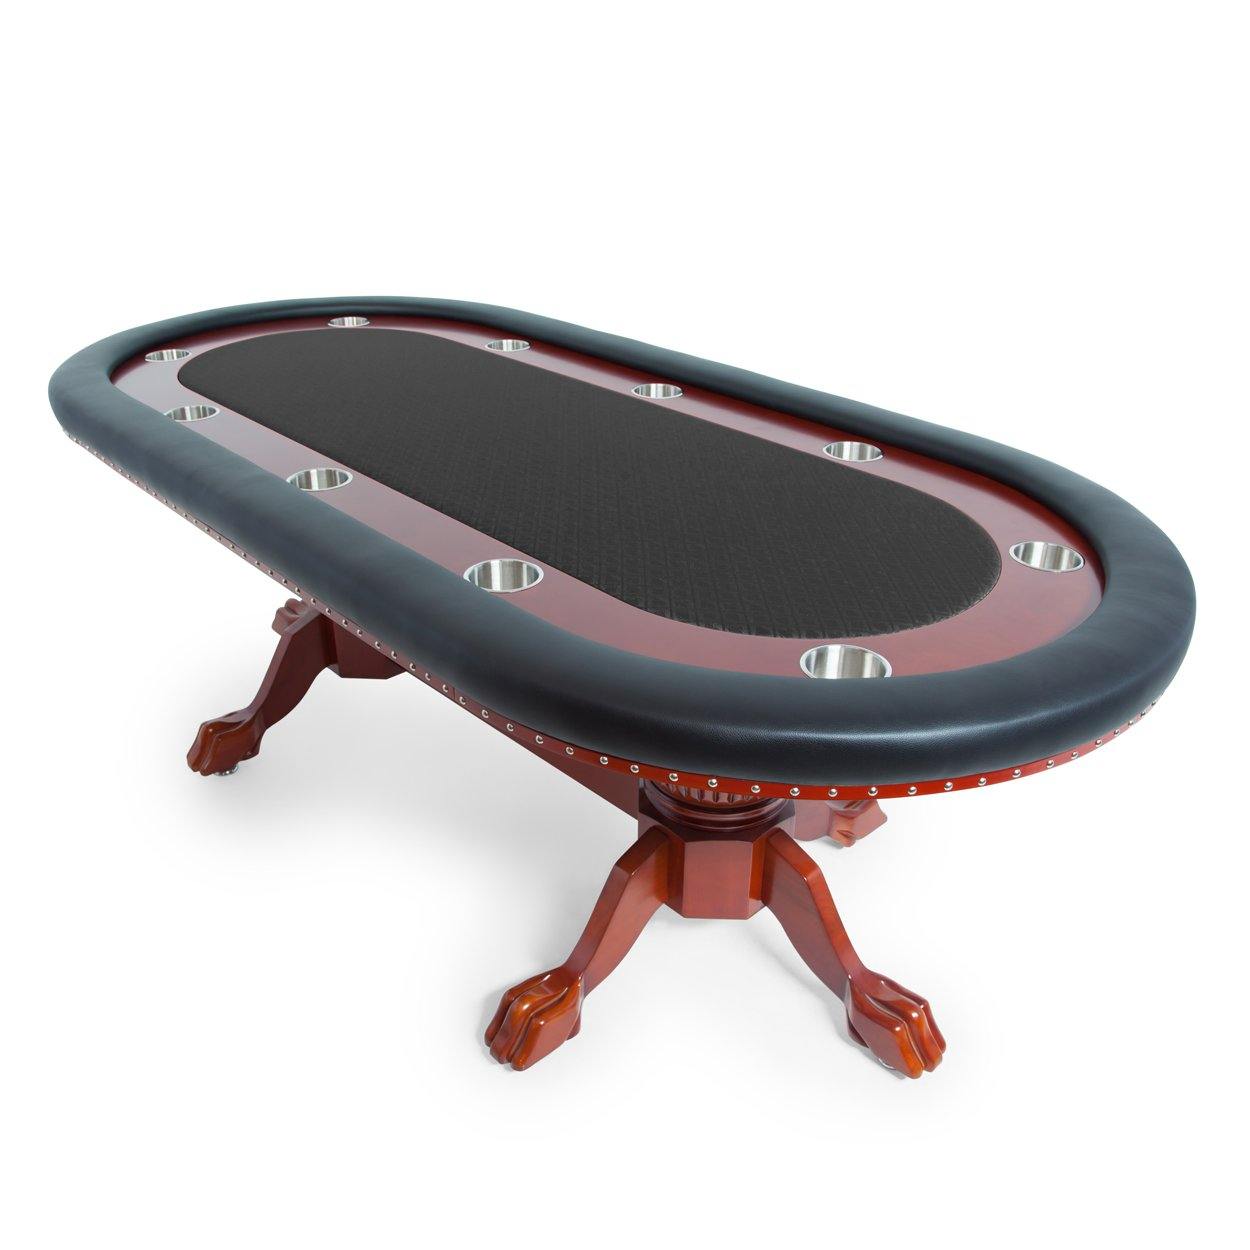 BBO Poker Rockwell Poker Table for 10 Players with Black Speed Cloth Playing Surface, 94 x 44-Inch Oval by BBO Poker